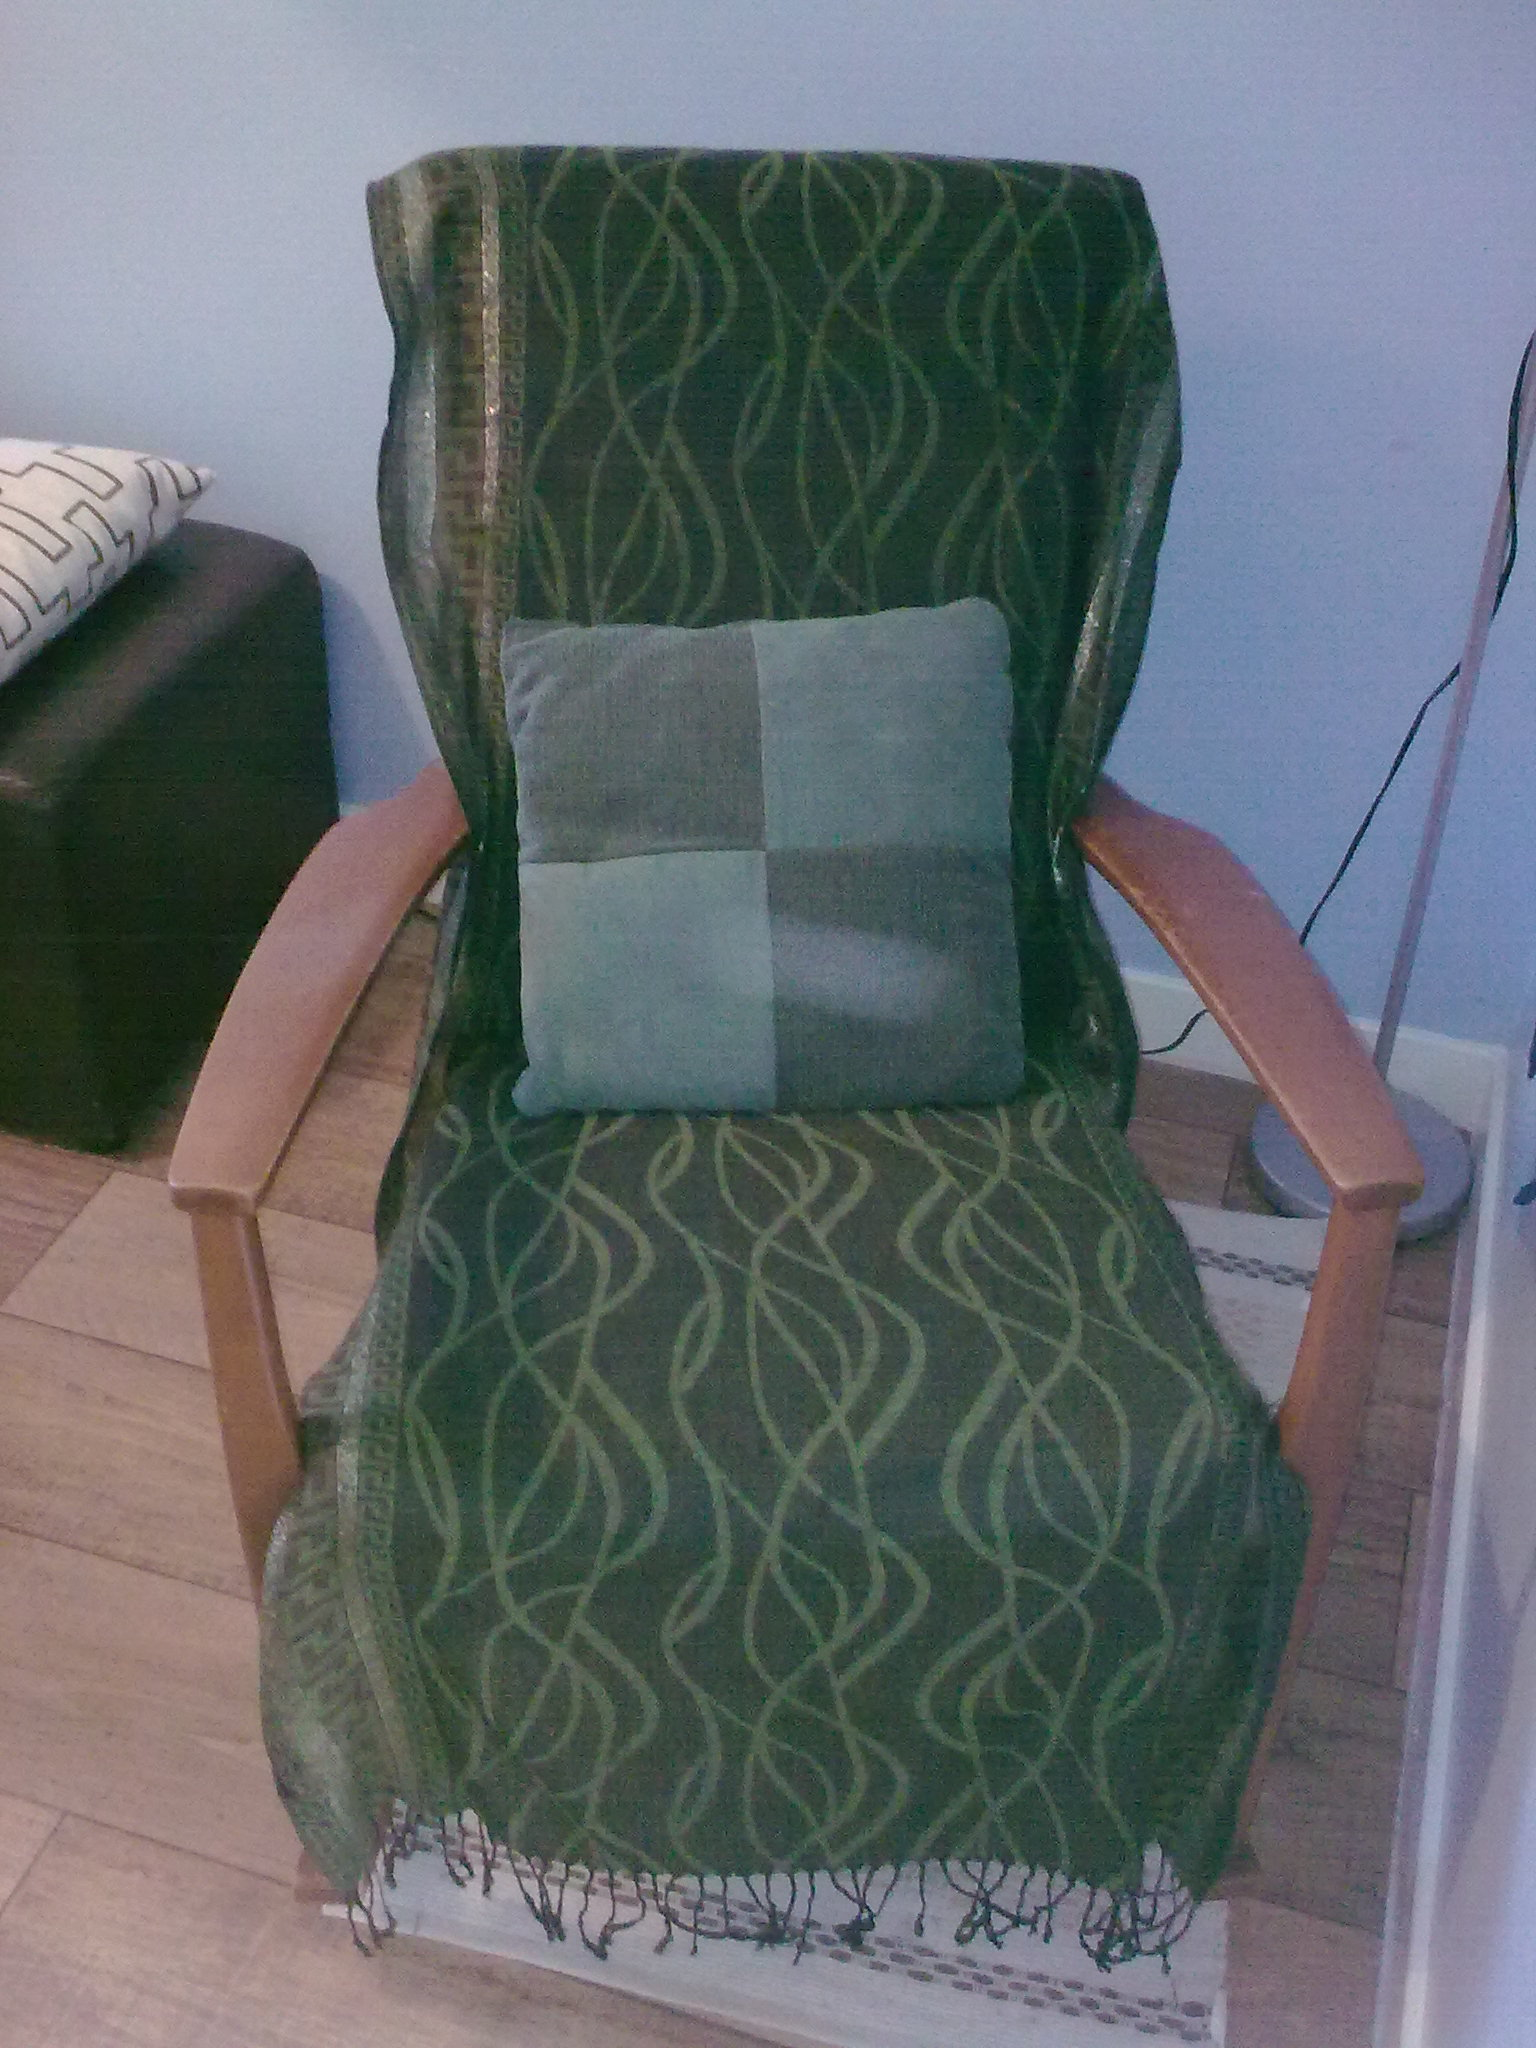 Ordinaire Old Rocking Chair. Old_rockingchair_covered_fabric